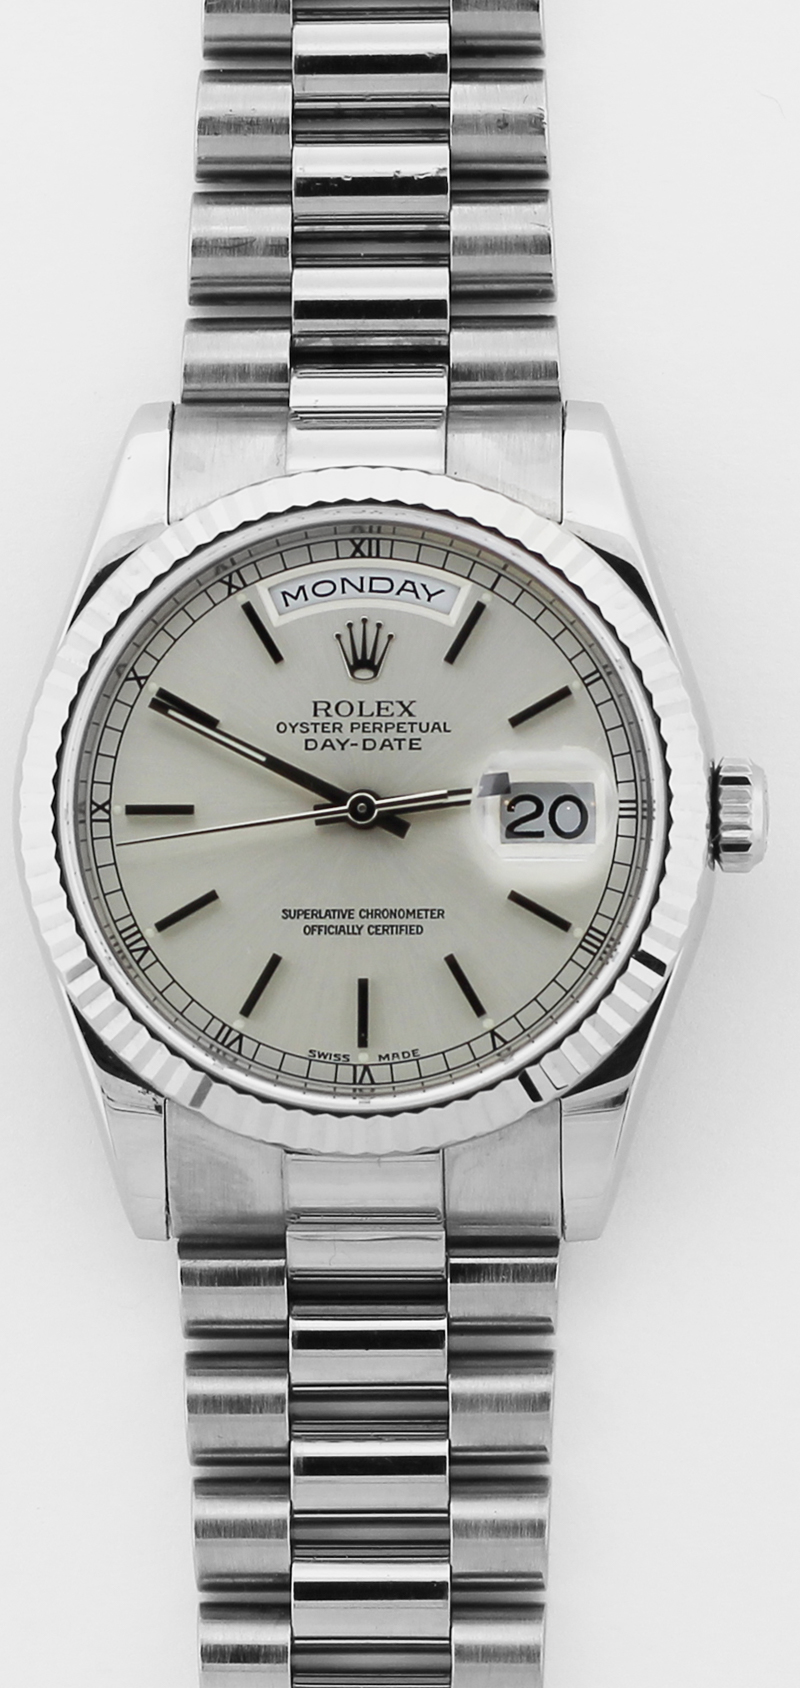 Rolex 18k White Gold Day-Date 118239 with Box & Booklets